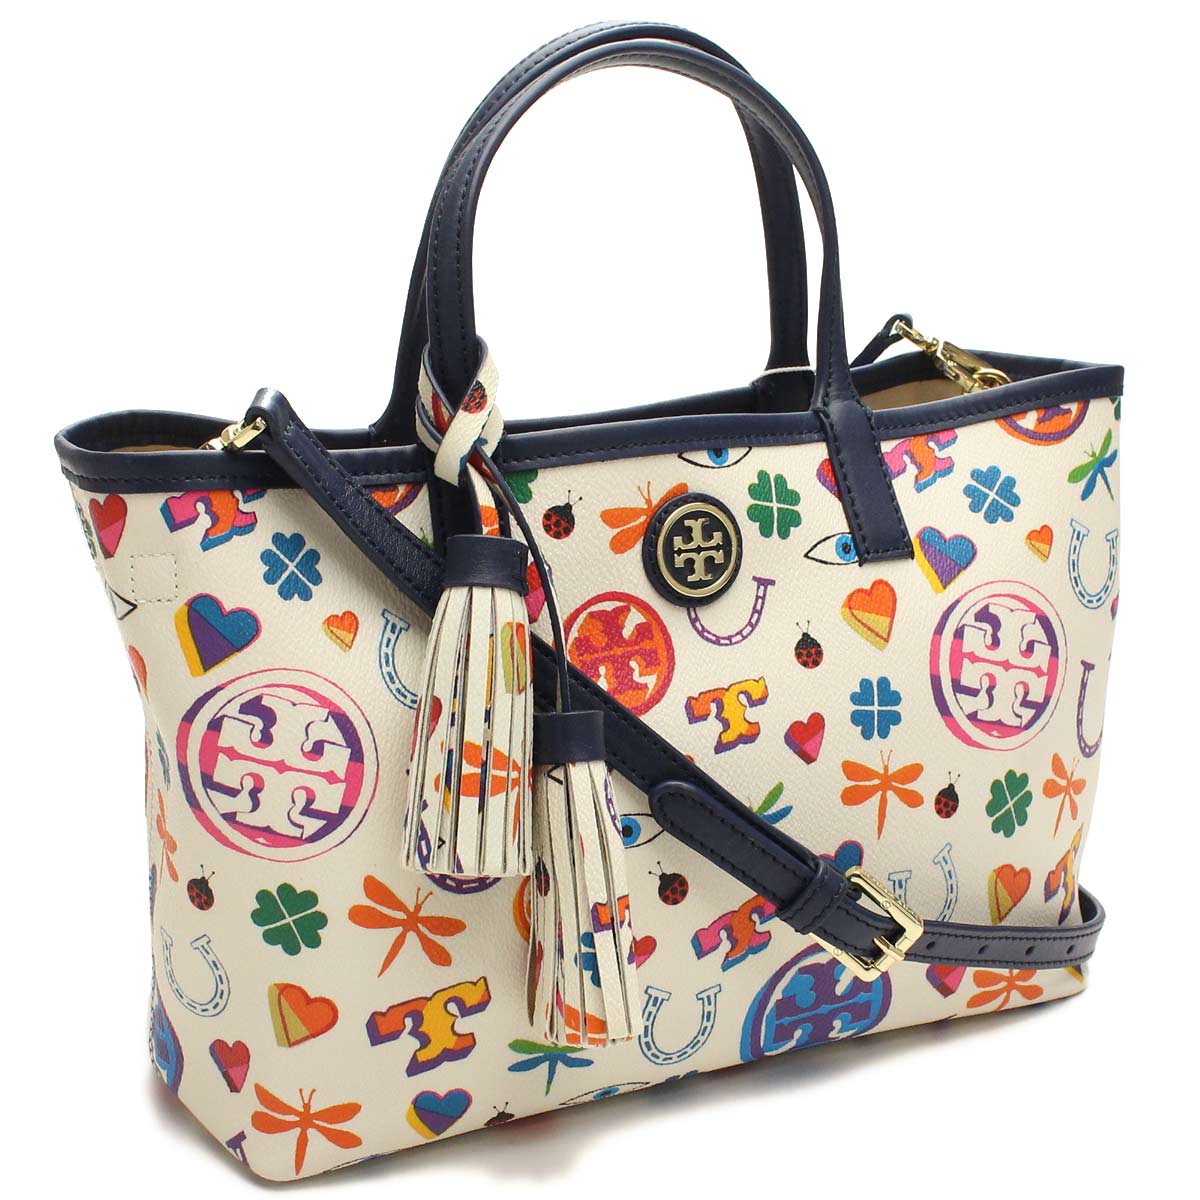 Tory Burch Tote Bag 41149509 960 New Ivory Luck Print White Series Multi Color Taxfree Send By Ems Authentic A Brand Item